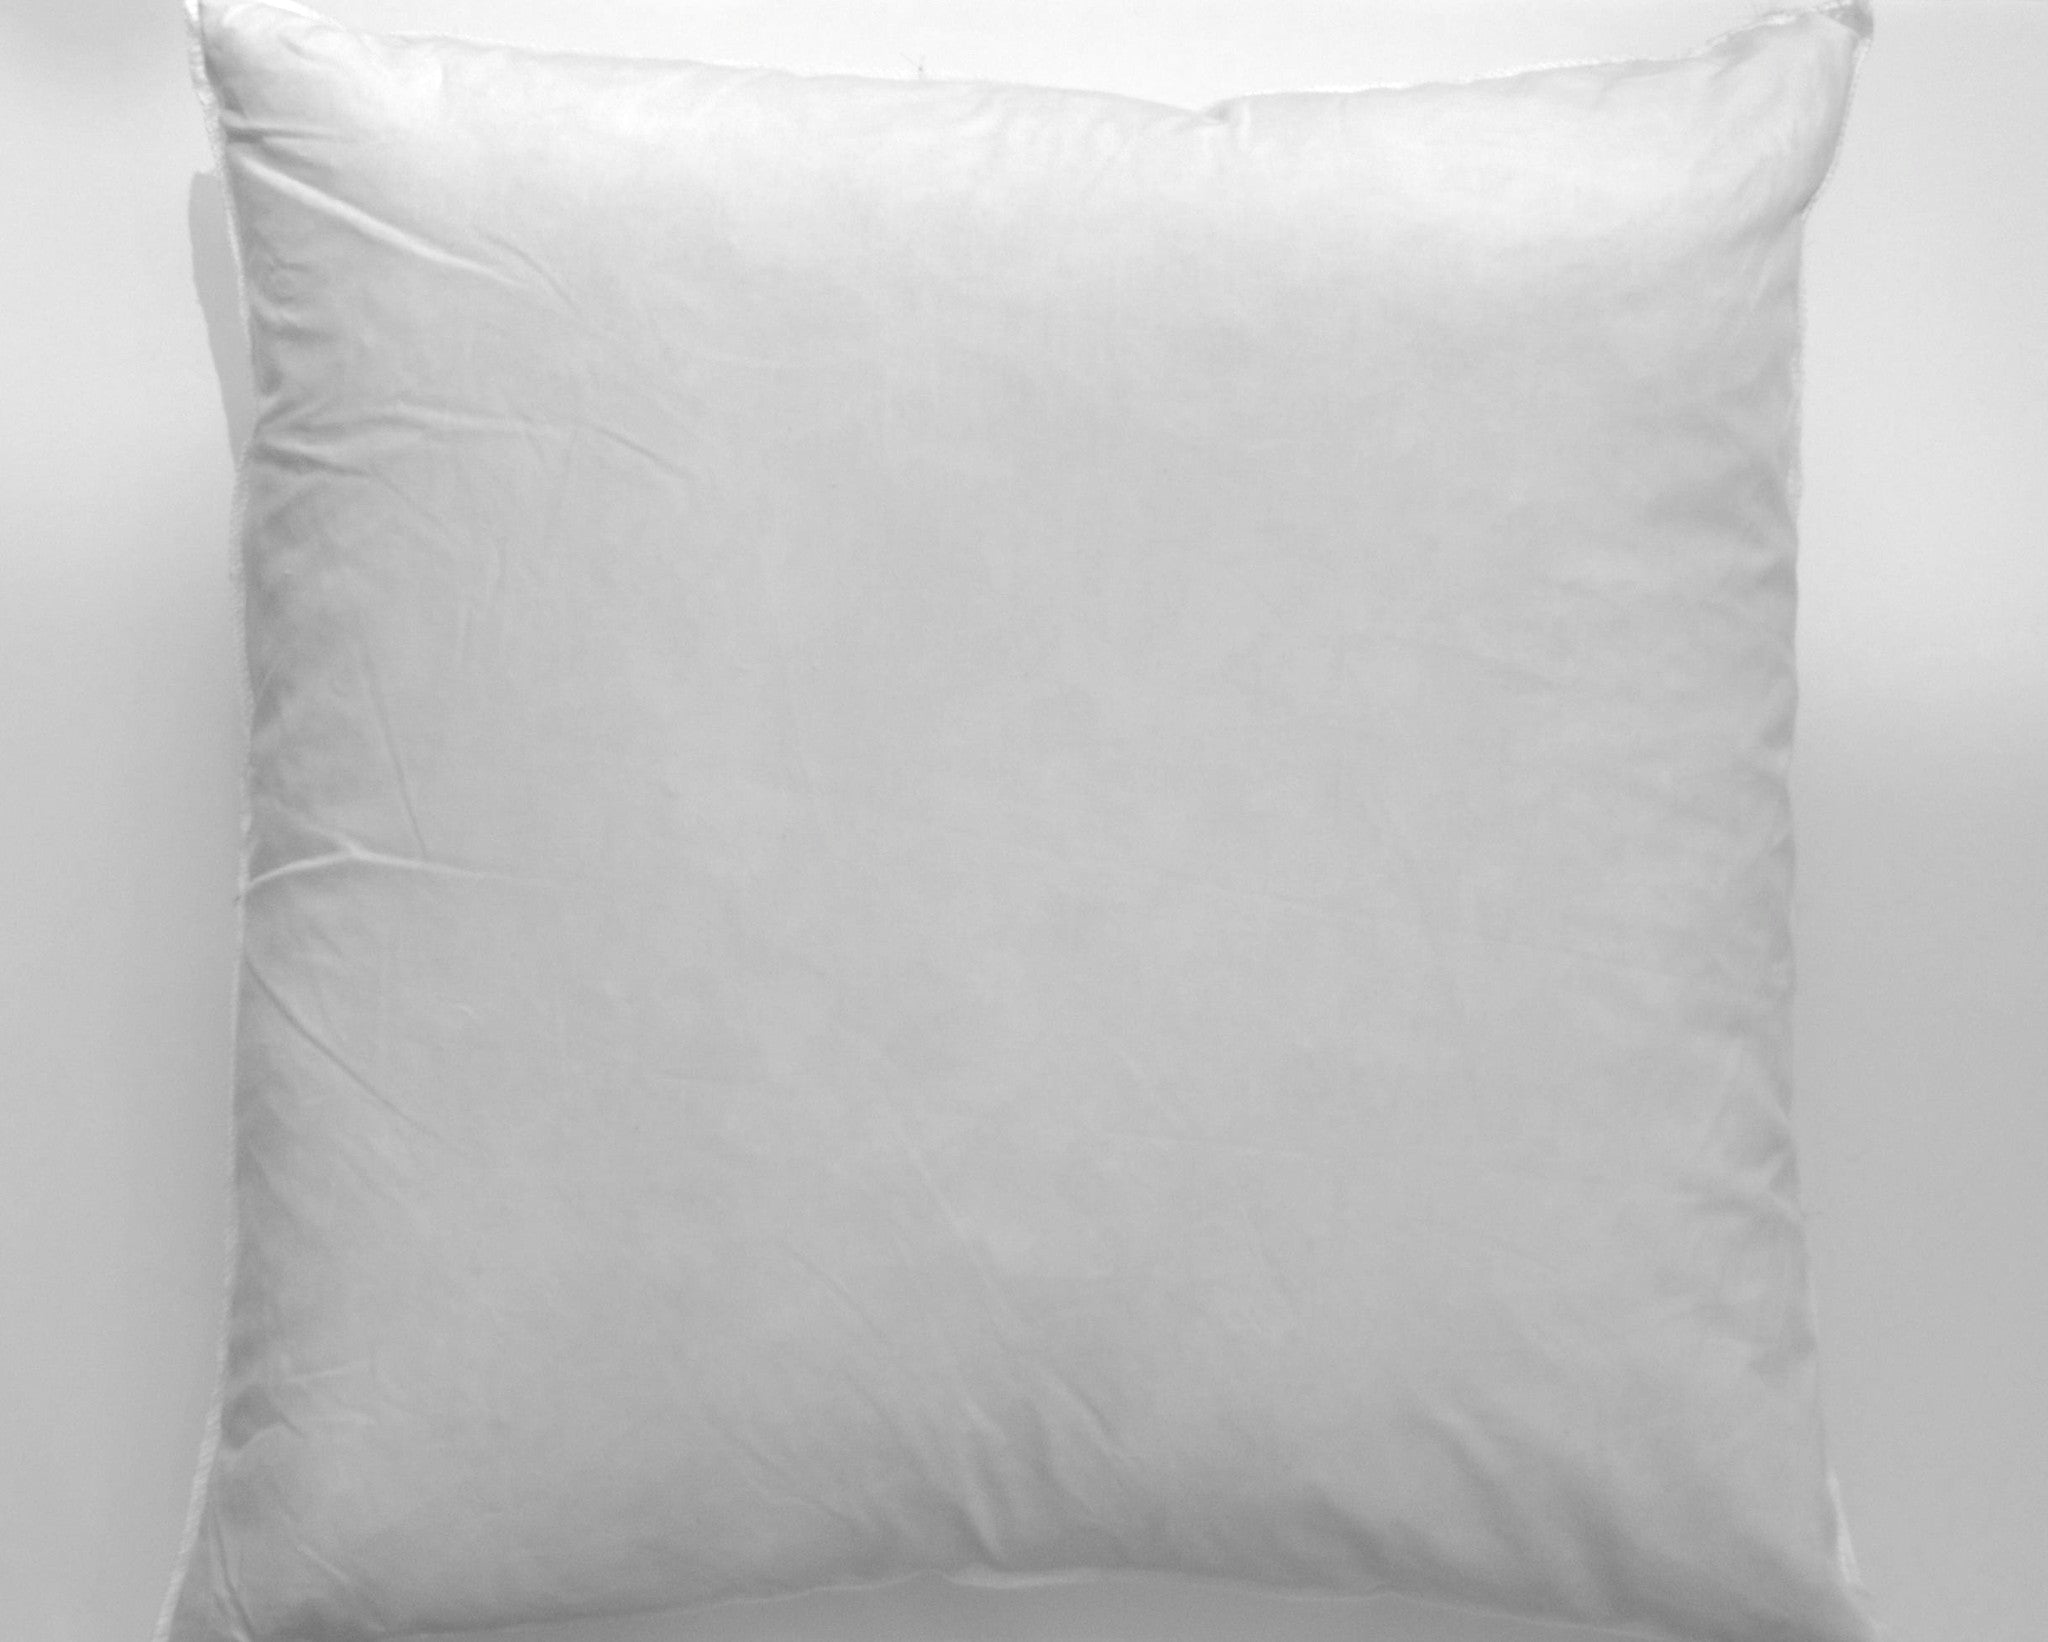 Pillow Insert 20 Square By Kaypee Soh